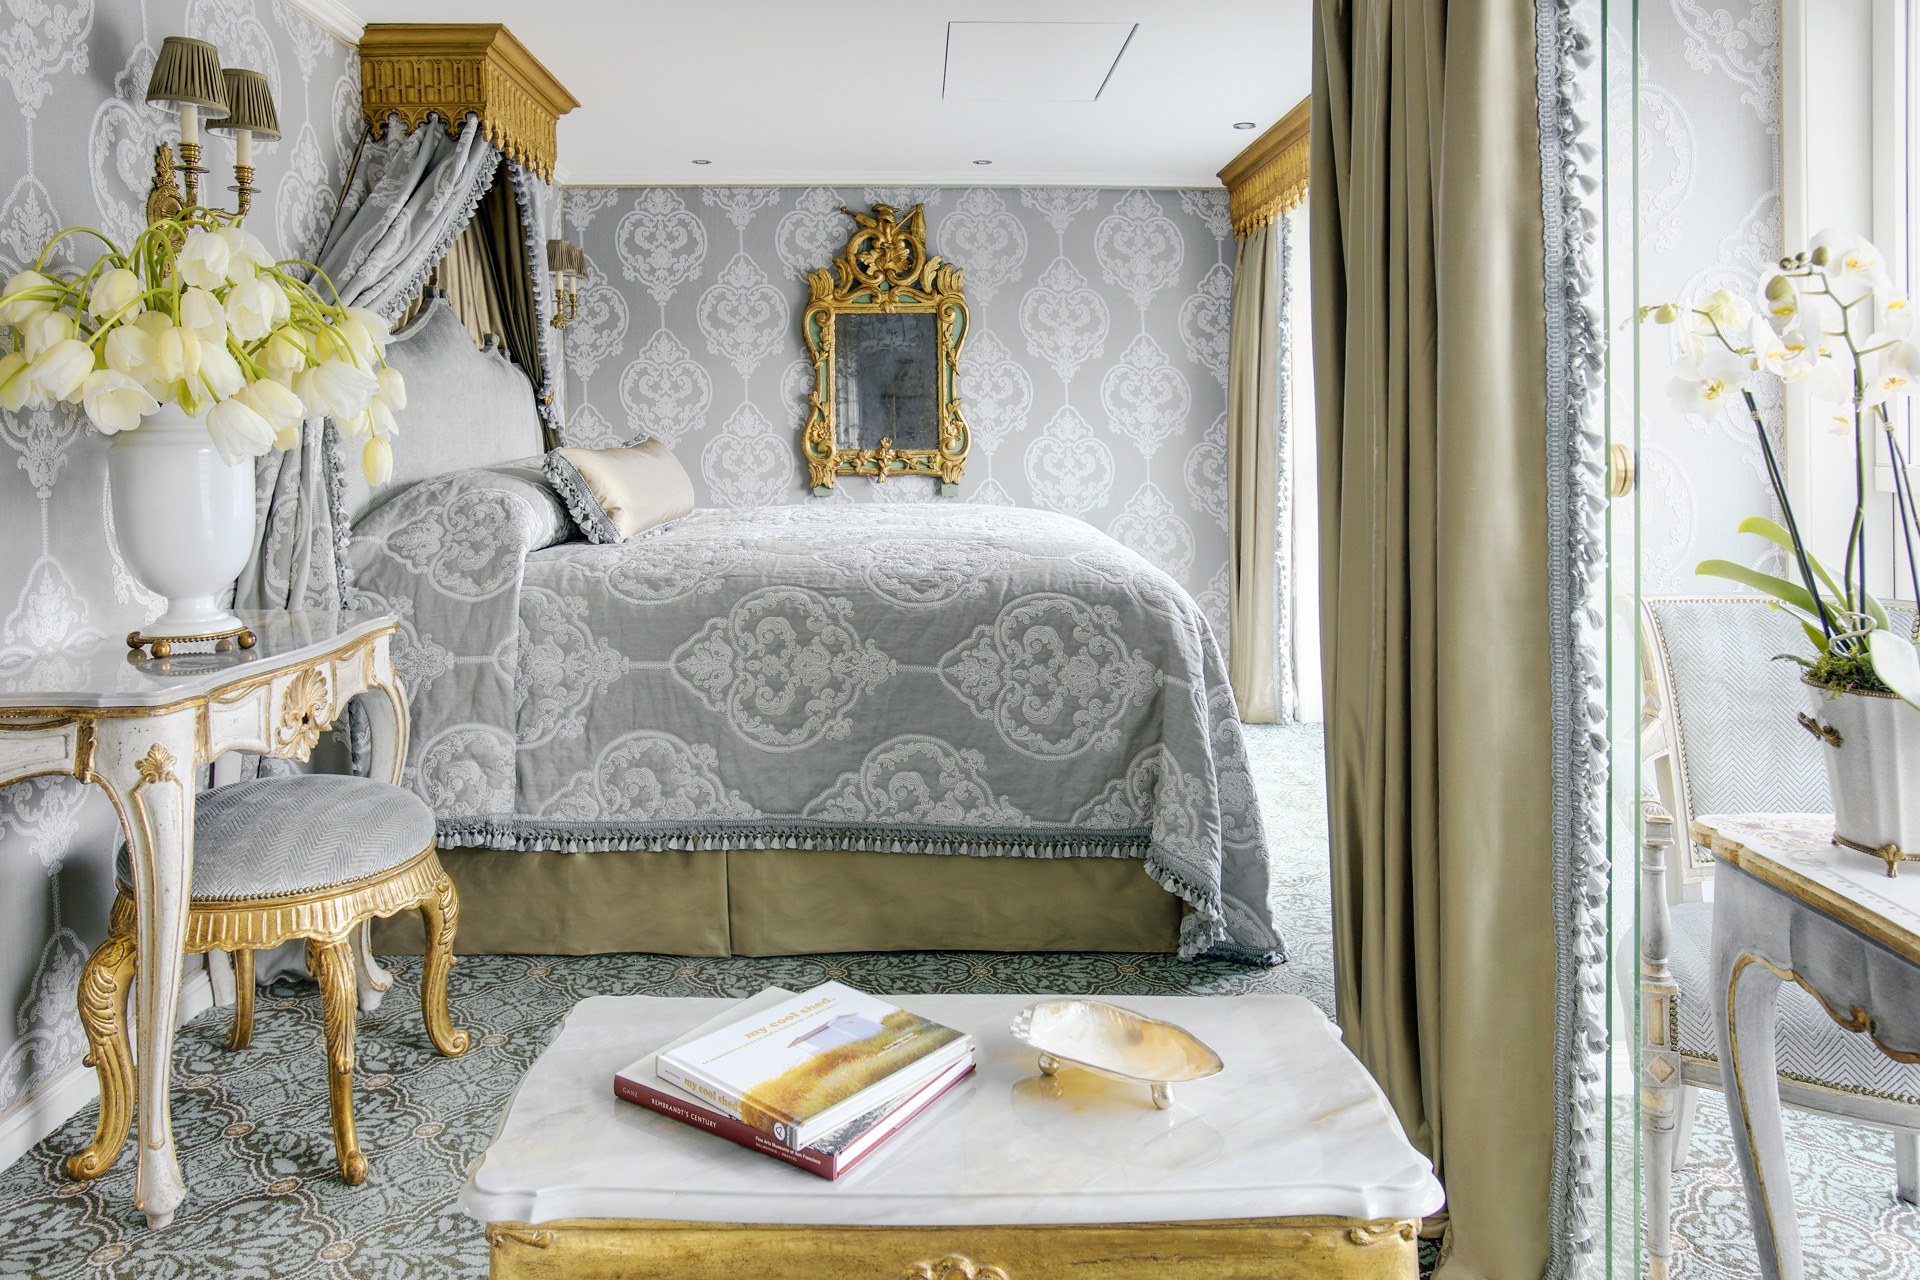 UNIWORLD Boutique River Cruises SS Maria Theresa Accommodation Suite 403 2.jpg